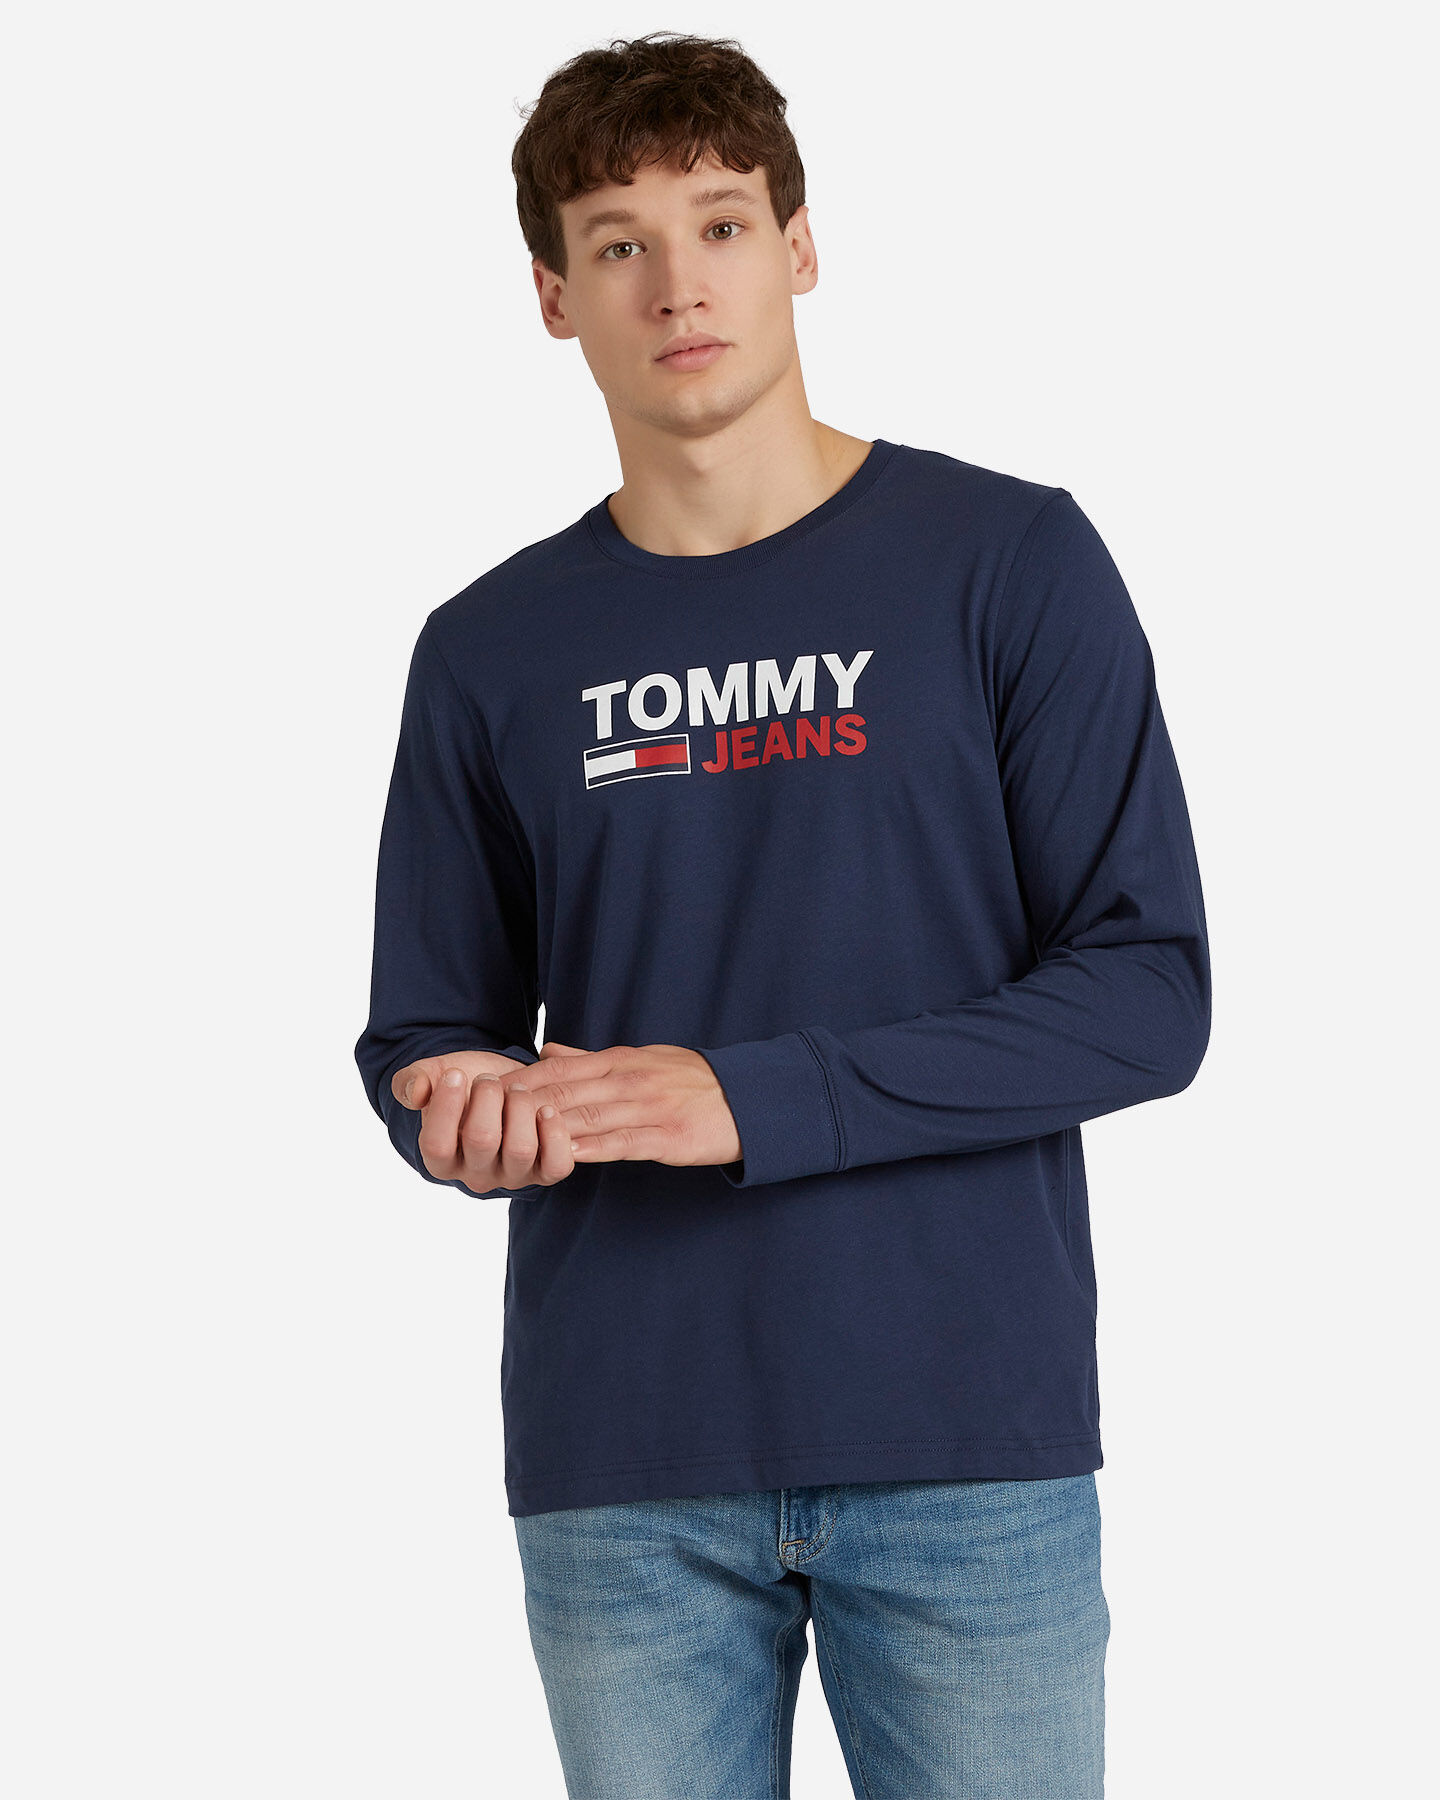 T-Shirt TOMMY HILFIGER LOGO M S4083707 scatto 0